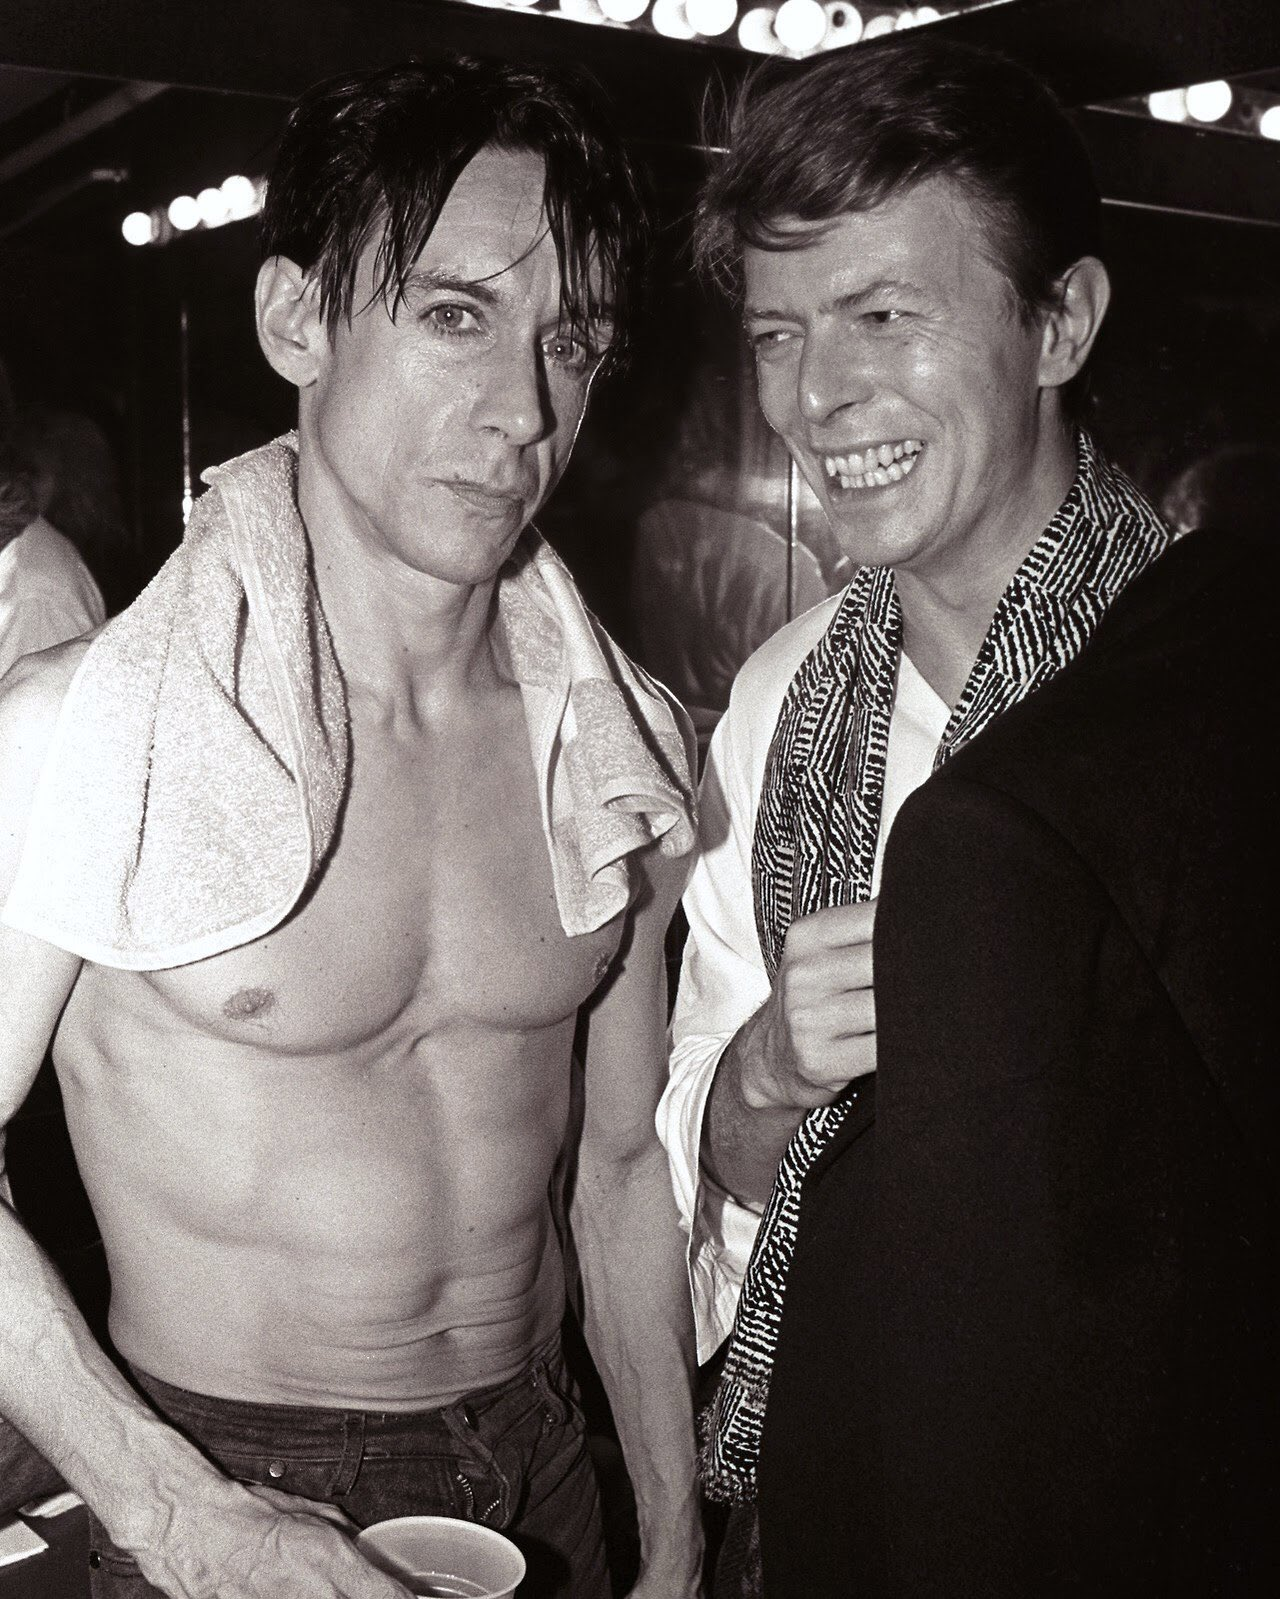 Happy 70th Birthday wishes to Iggy Pop